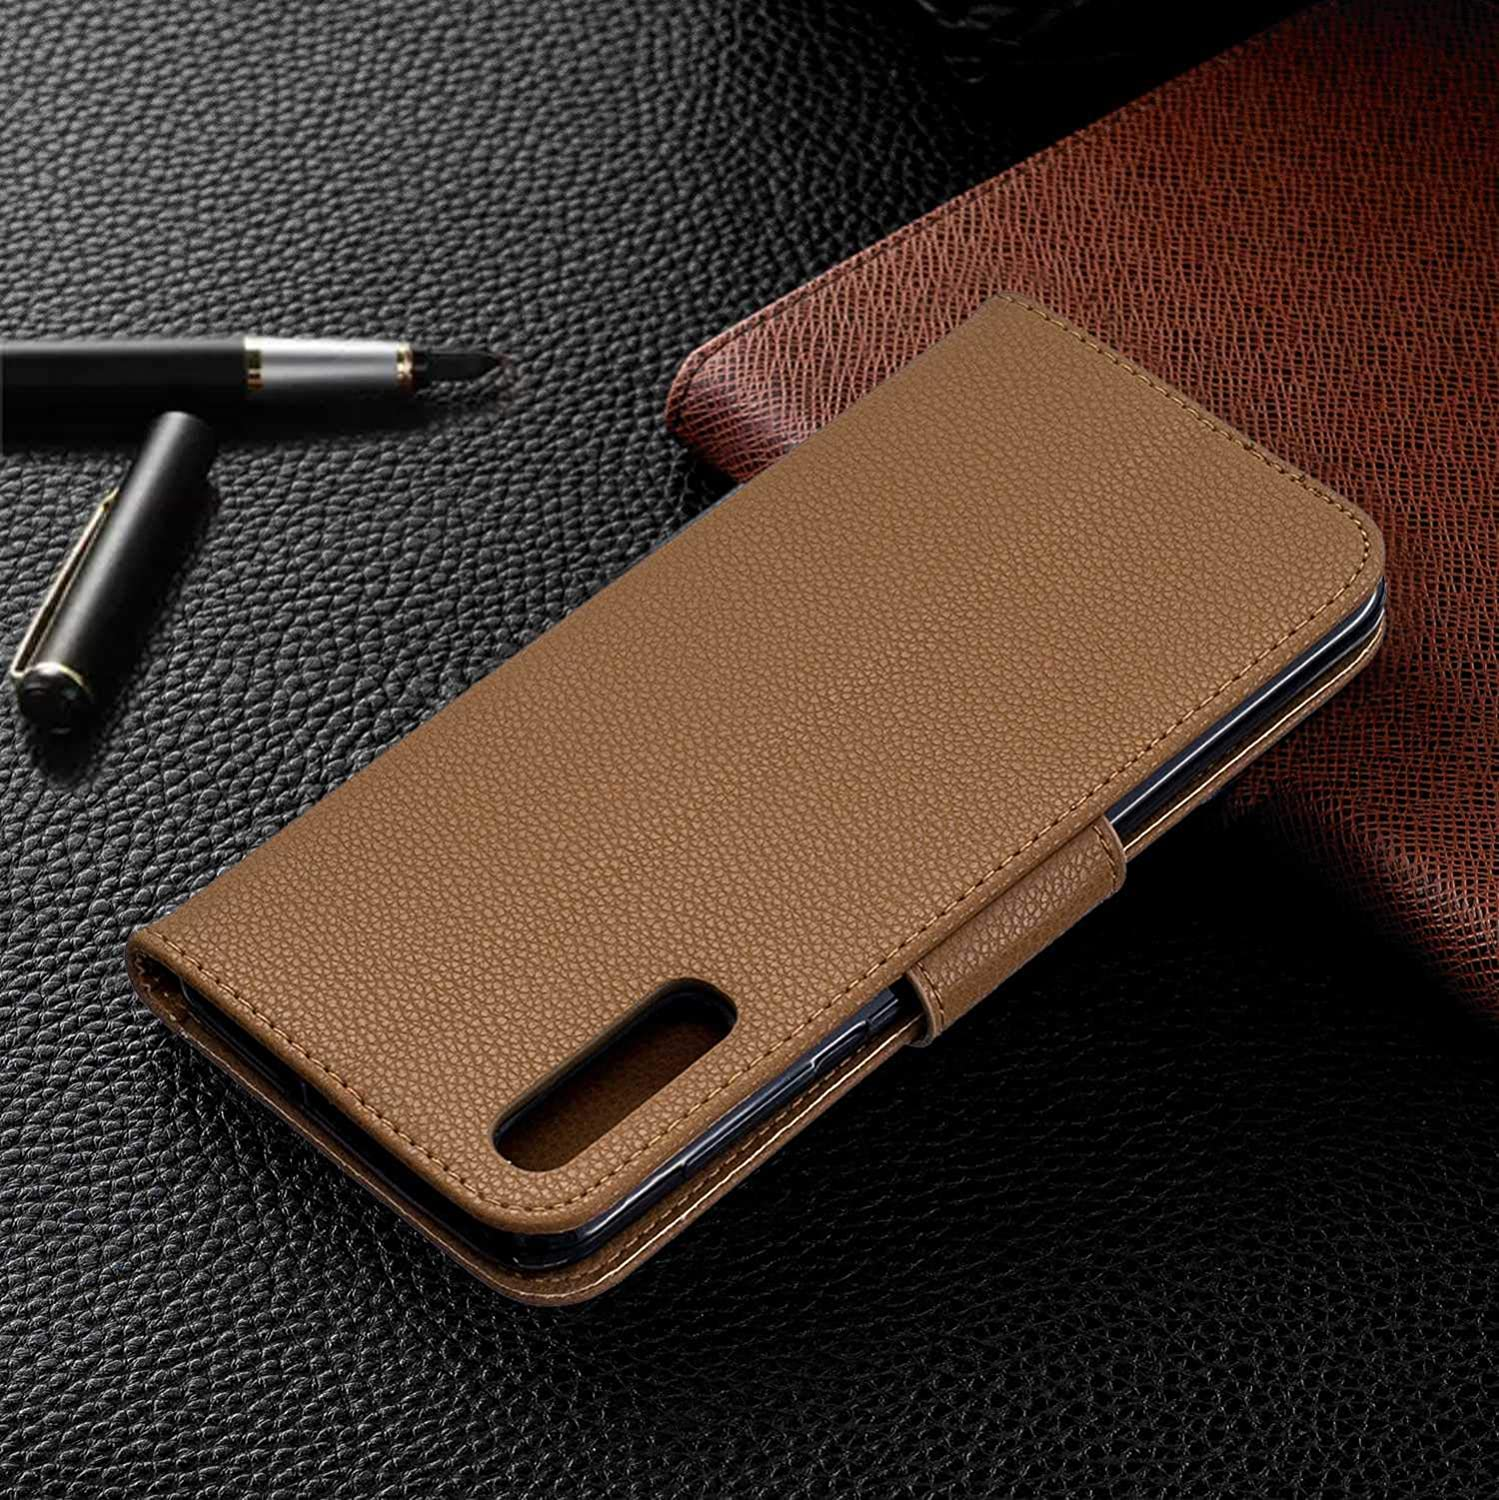 Bear Village Premium PU Wallet Protective Case with Kickstand Function Galaxy A50 Case Black Wrist Strap and Card Slots for Samsung Galaxy A50